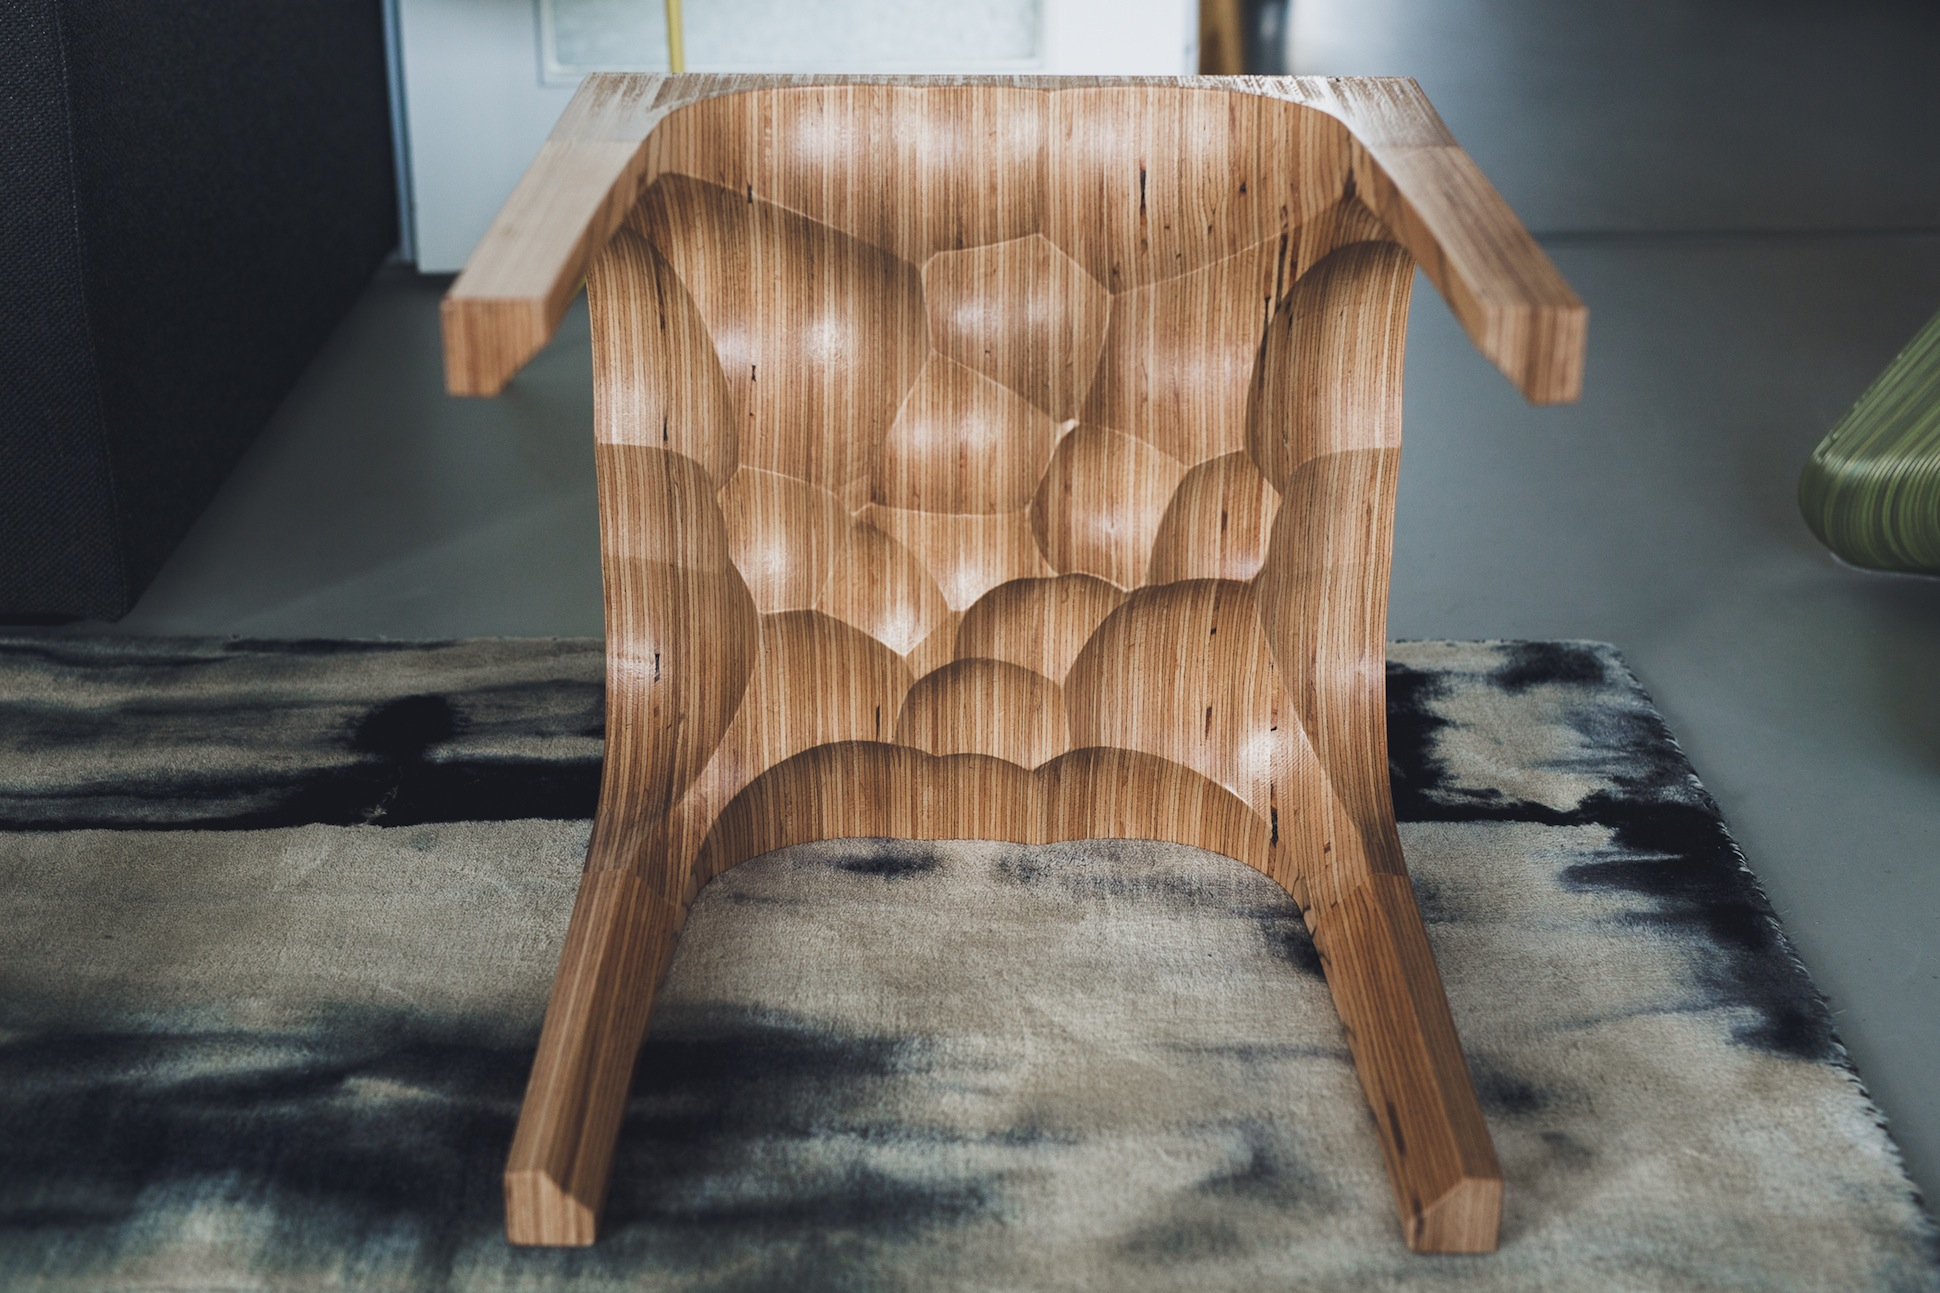 Sustainable 3D-Printed Furniture By NOWlab